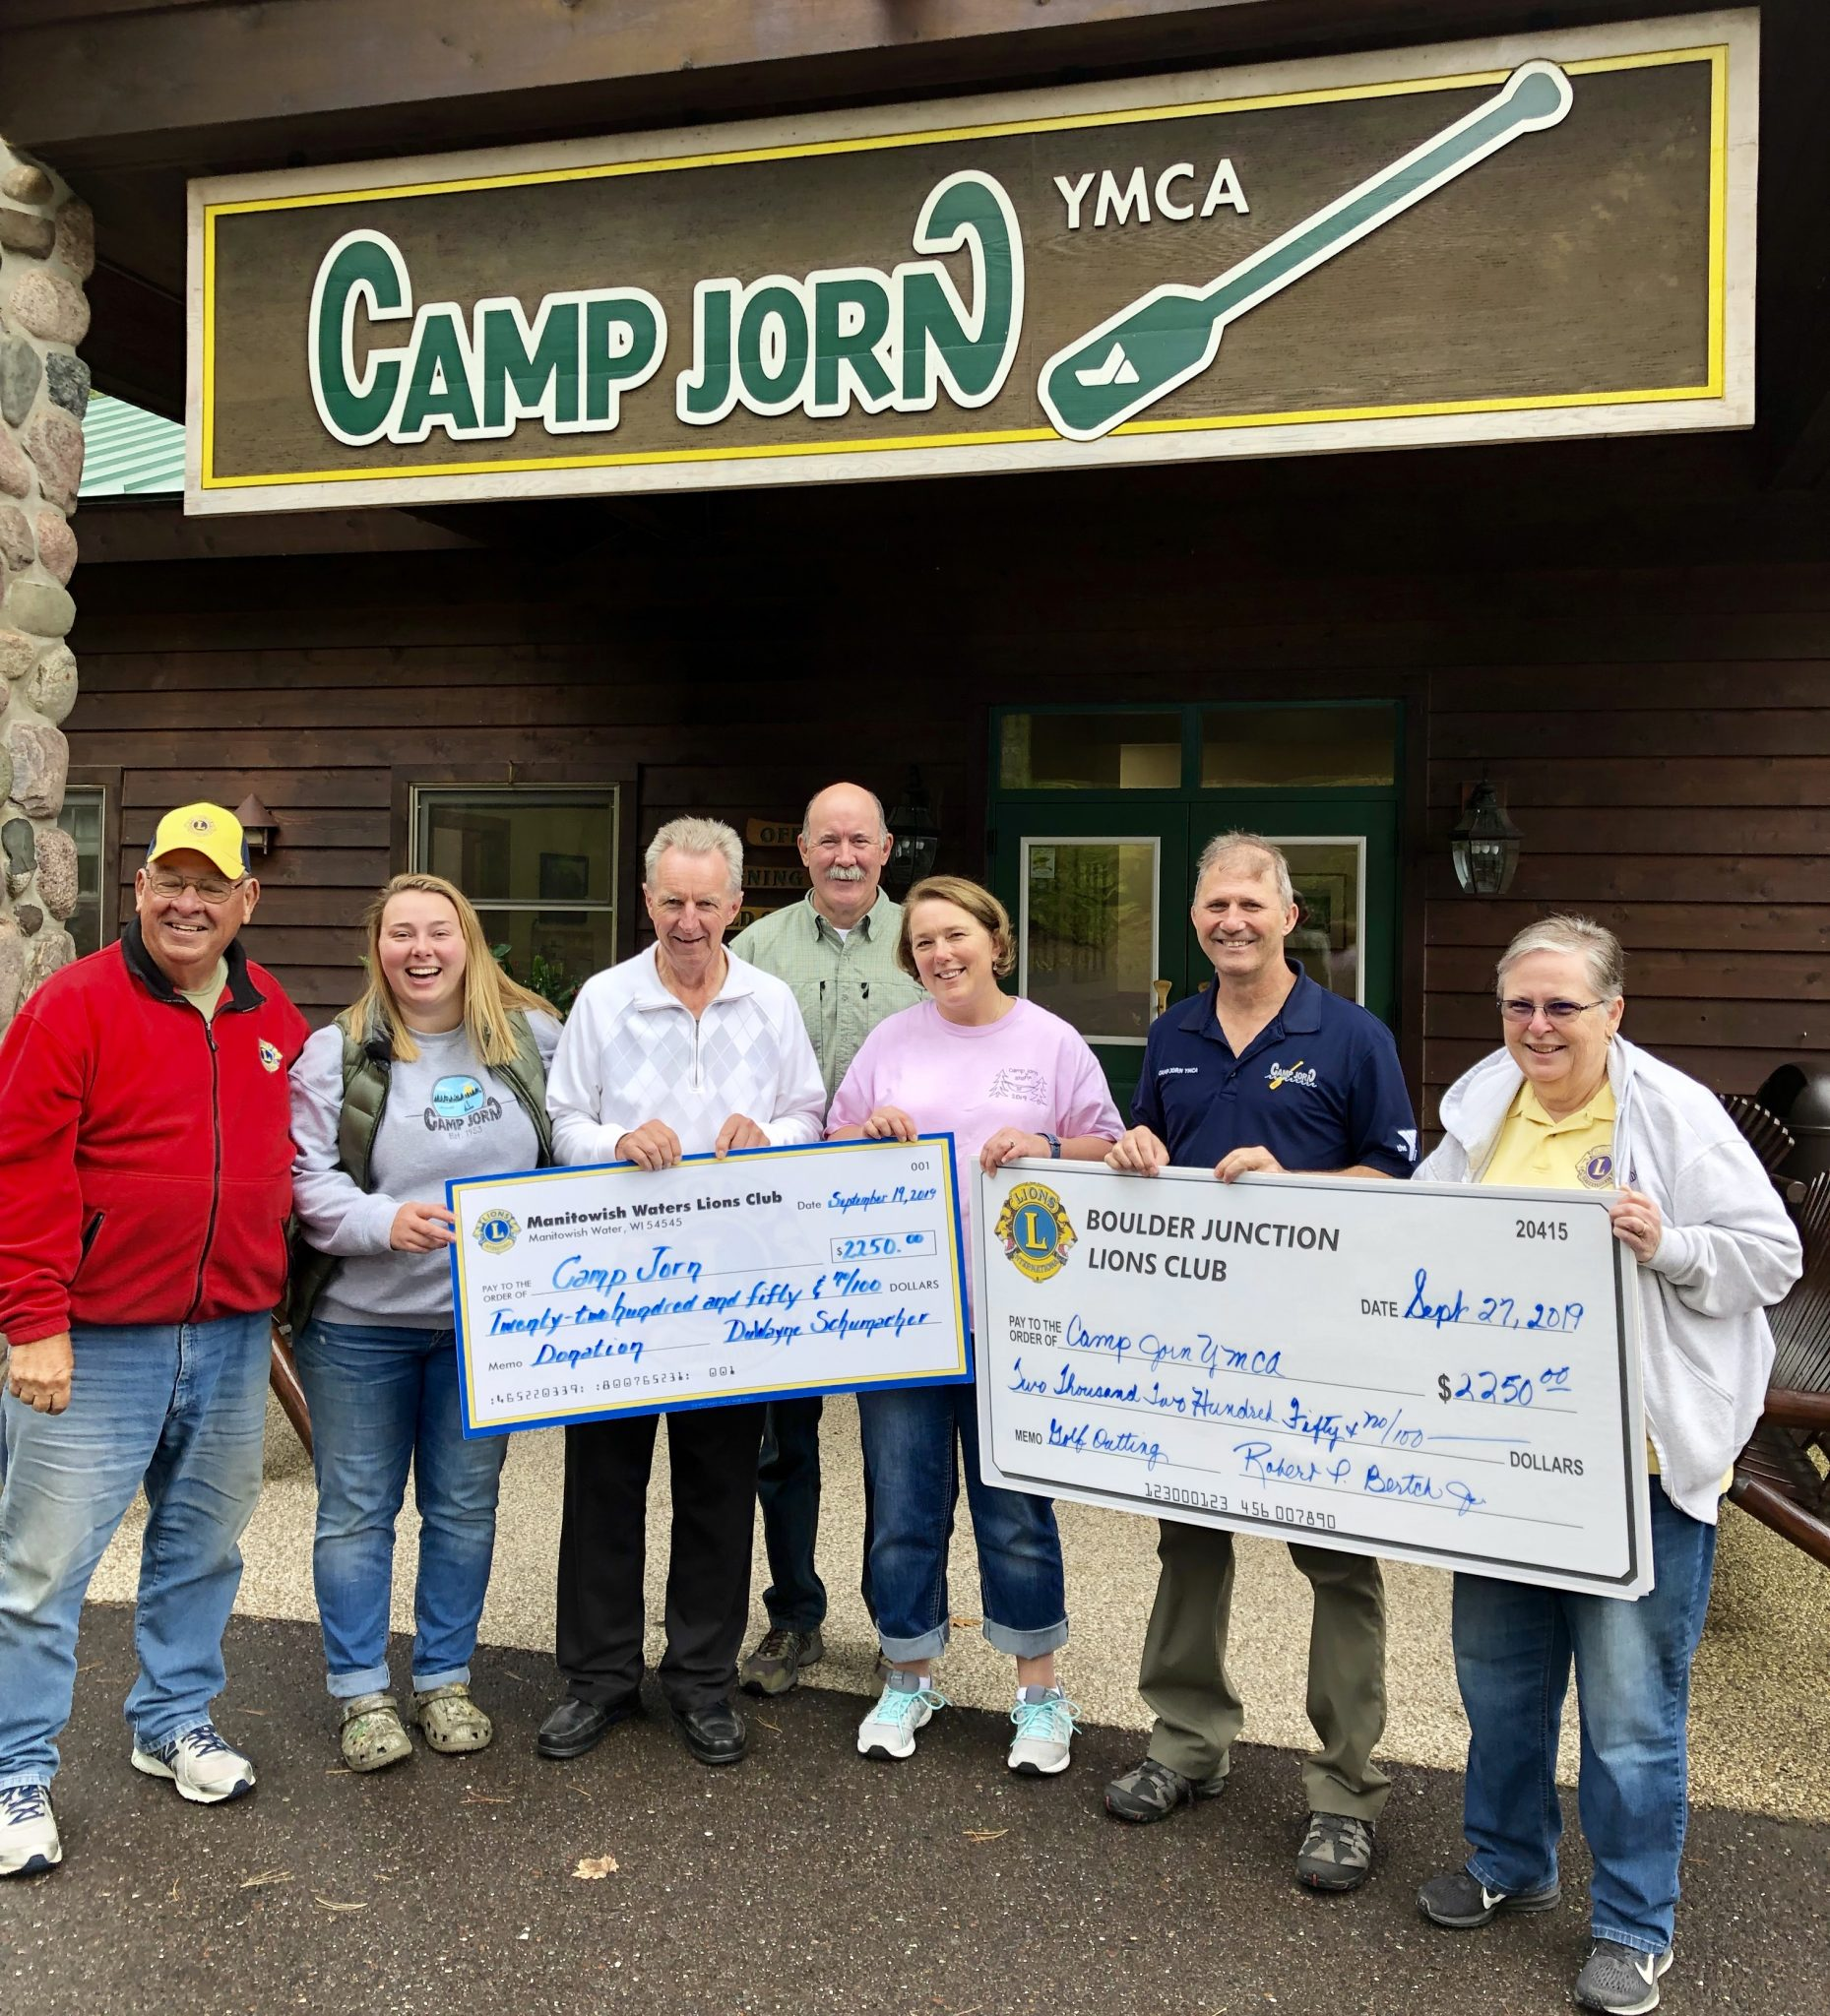 Camp Jorn Golf Outing Donation